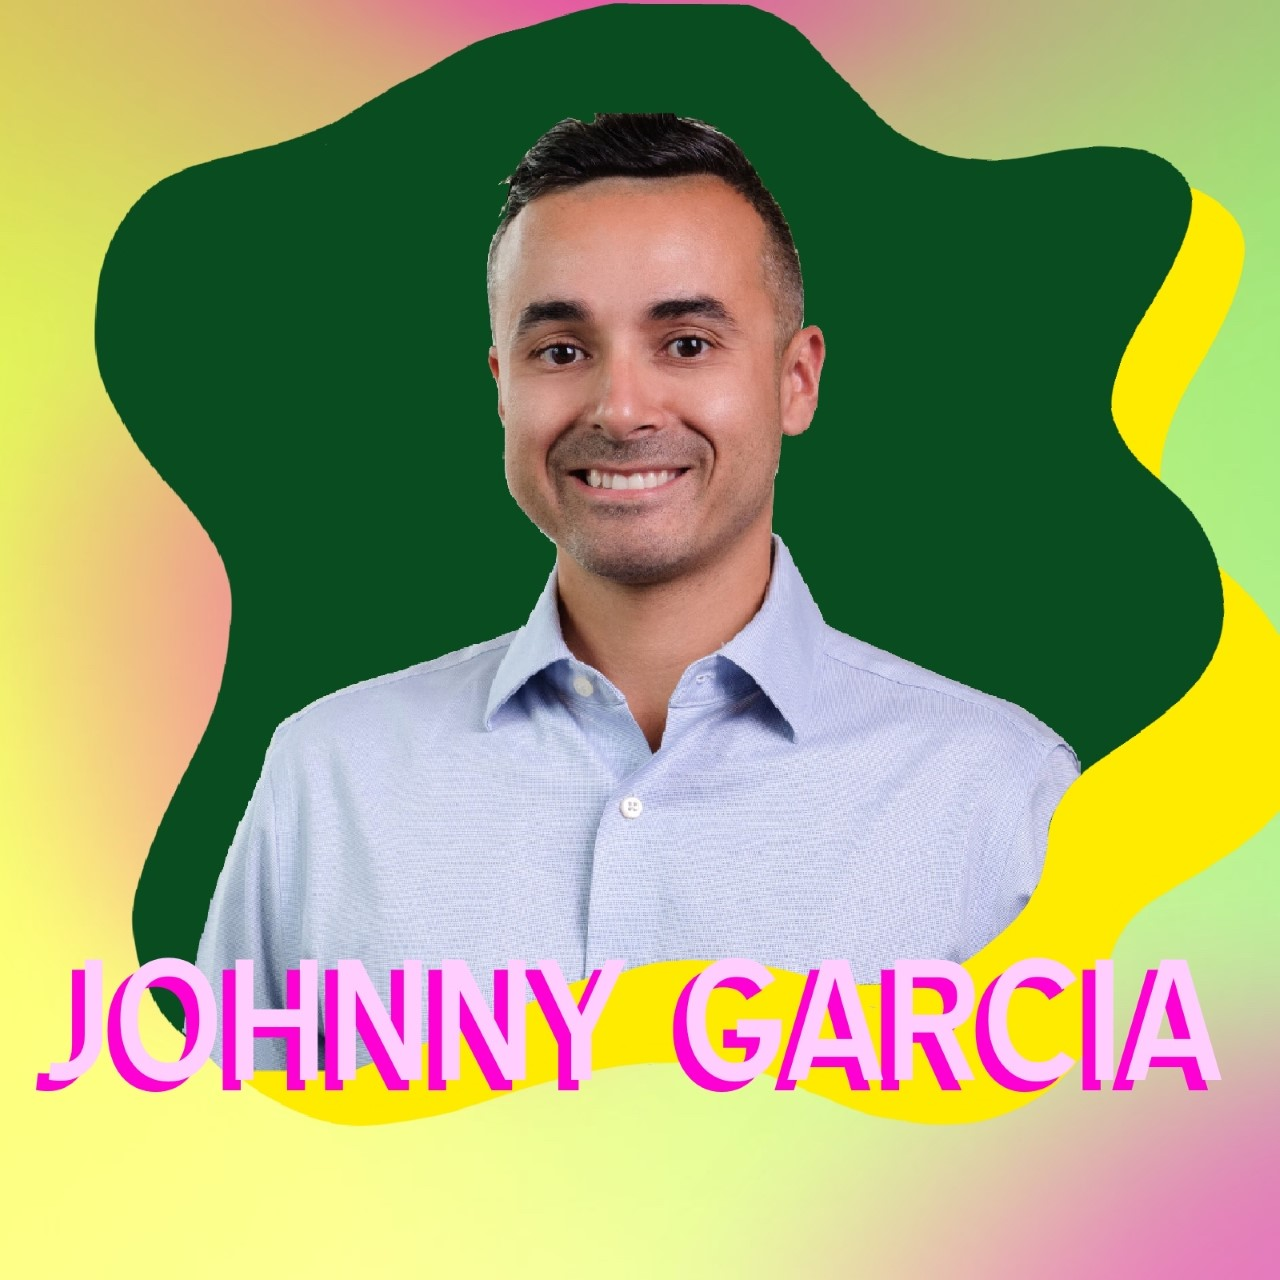 """Johnny Garcia"" superimposed over his headshot"